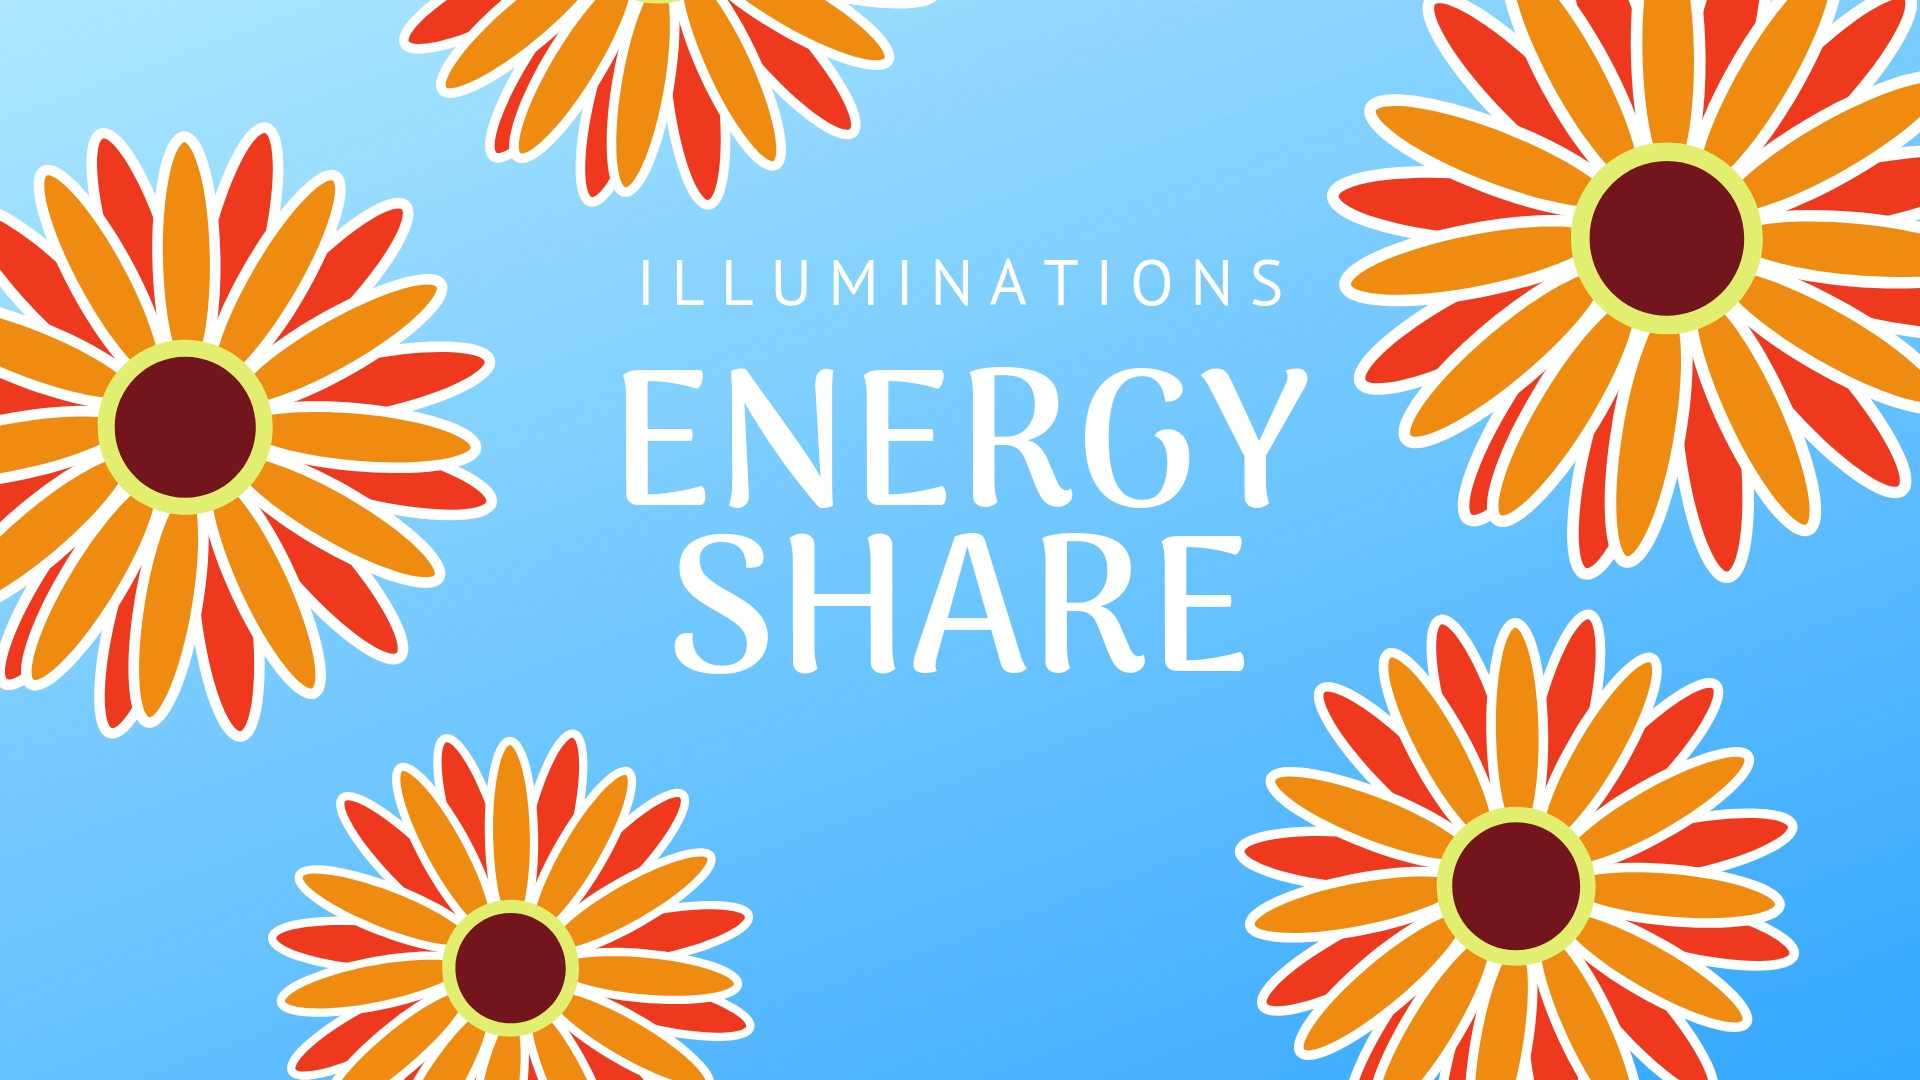 Energy Share June 2019